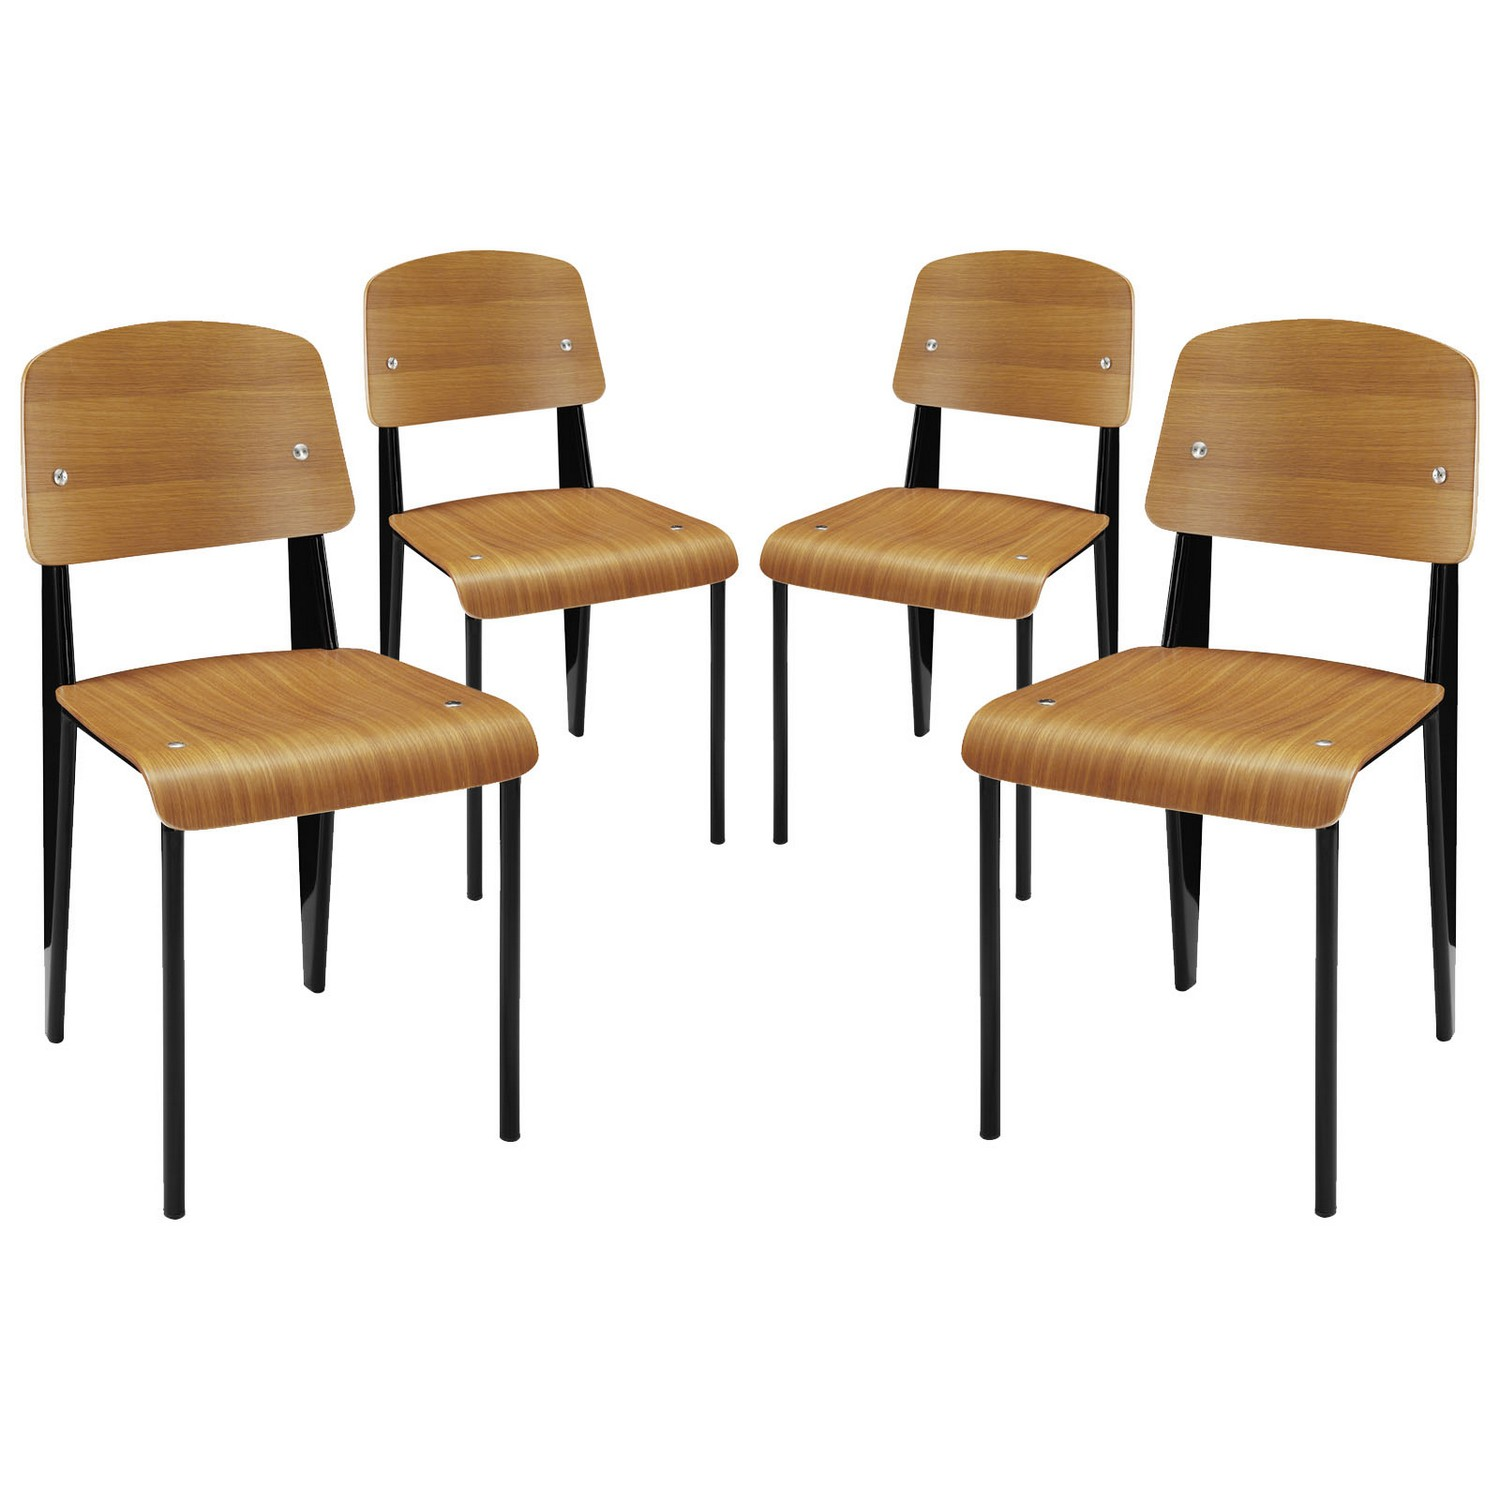 Modway Cabin Dining Side Chair Set of 4 - Walnut